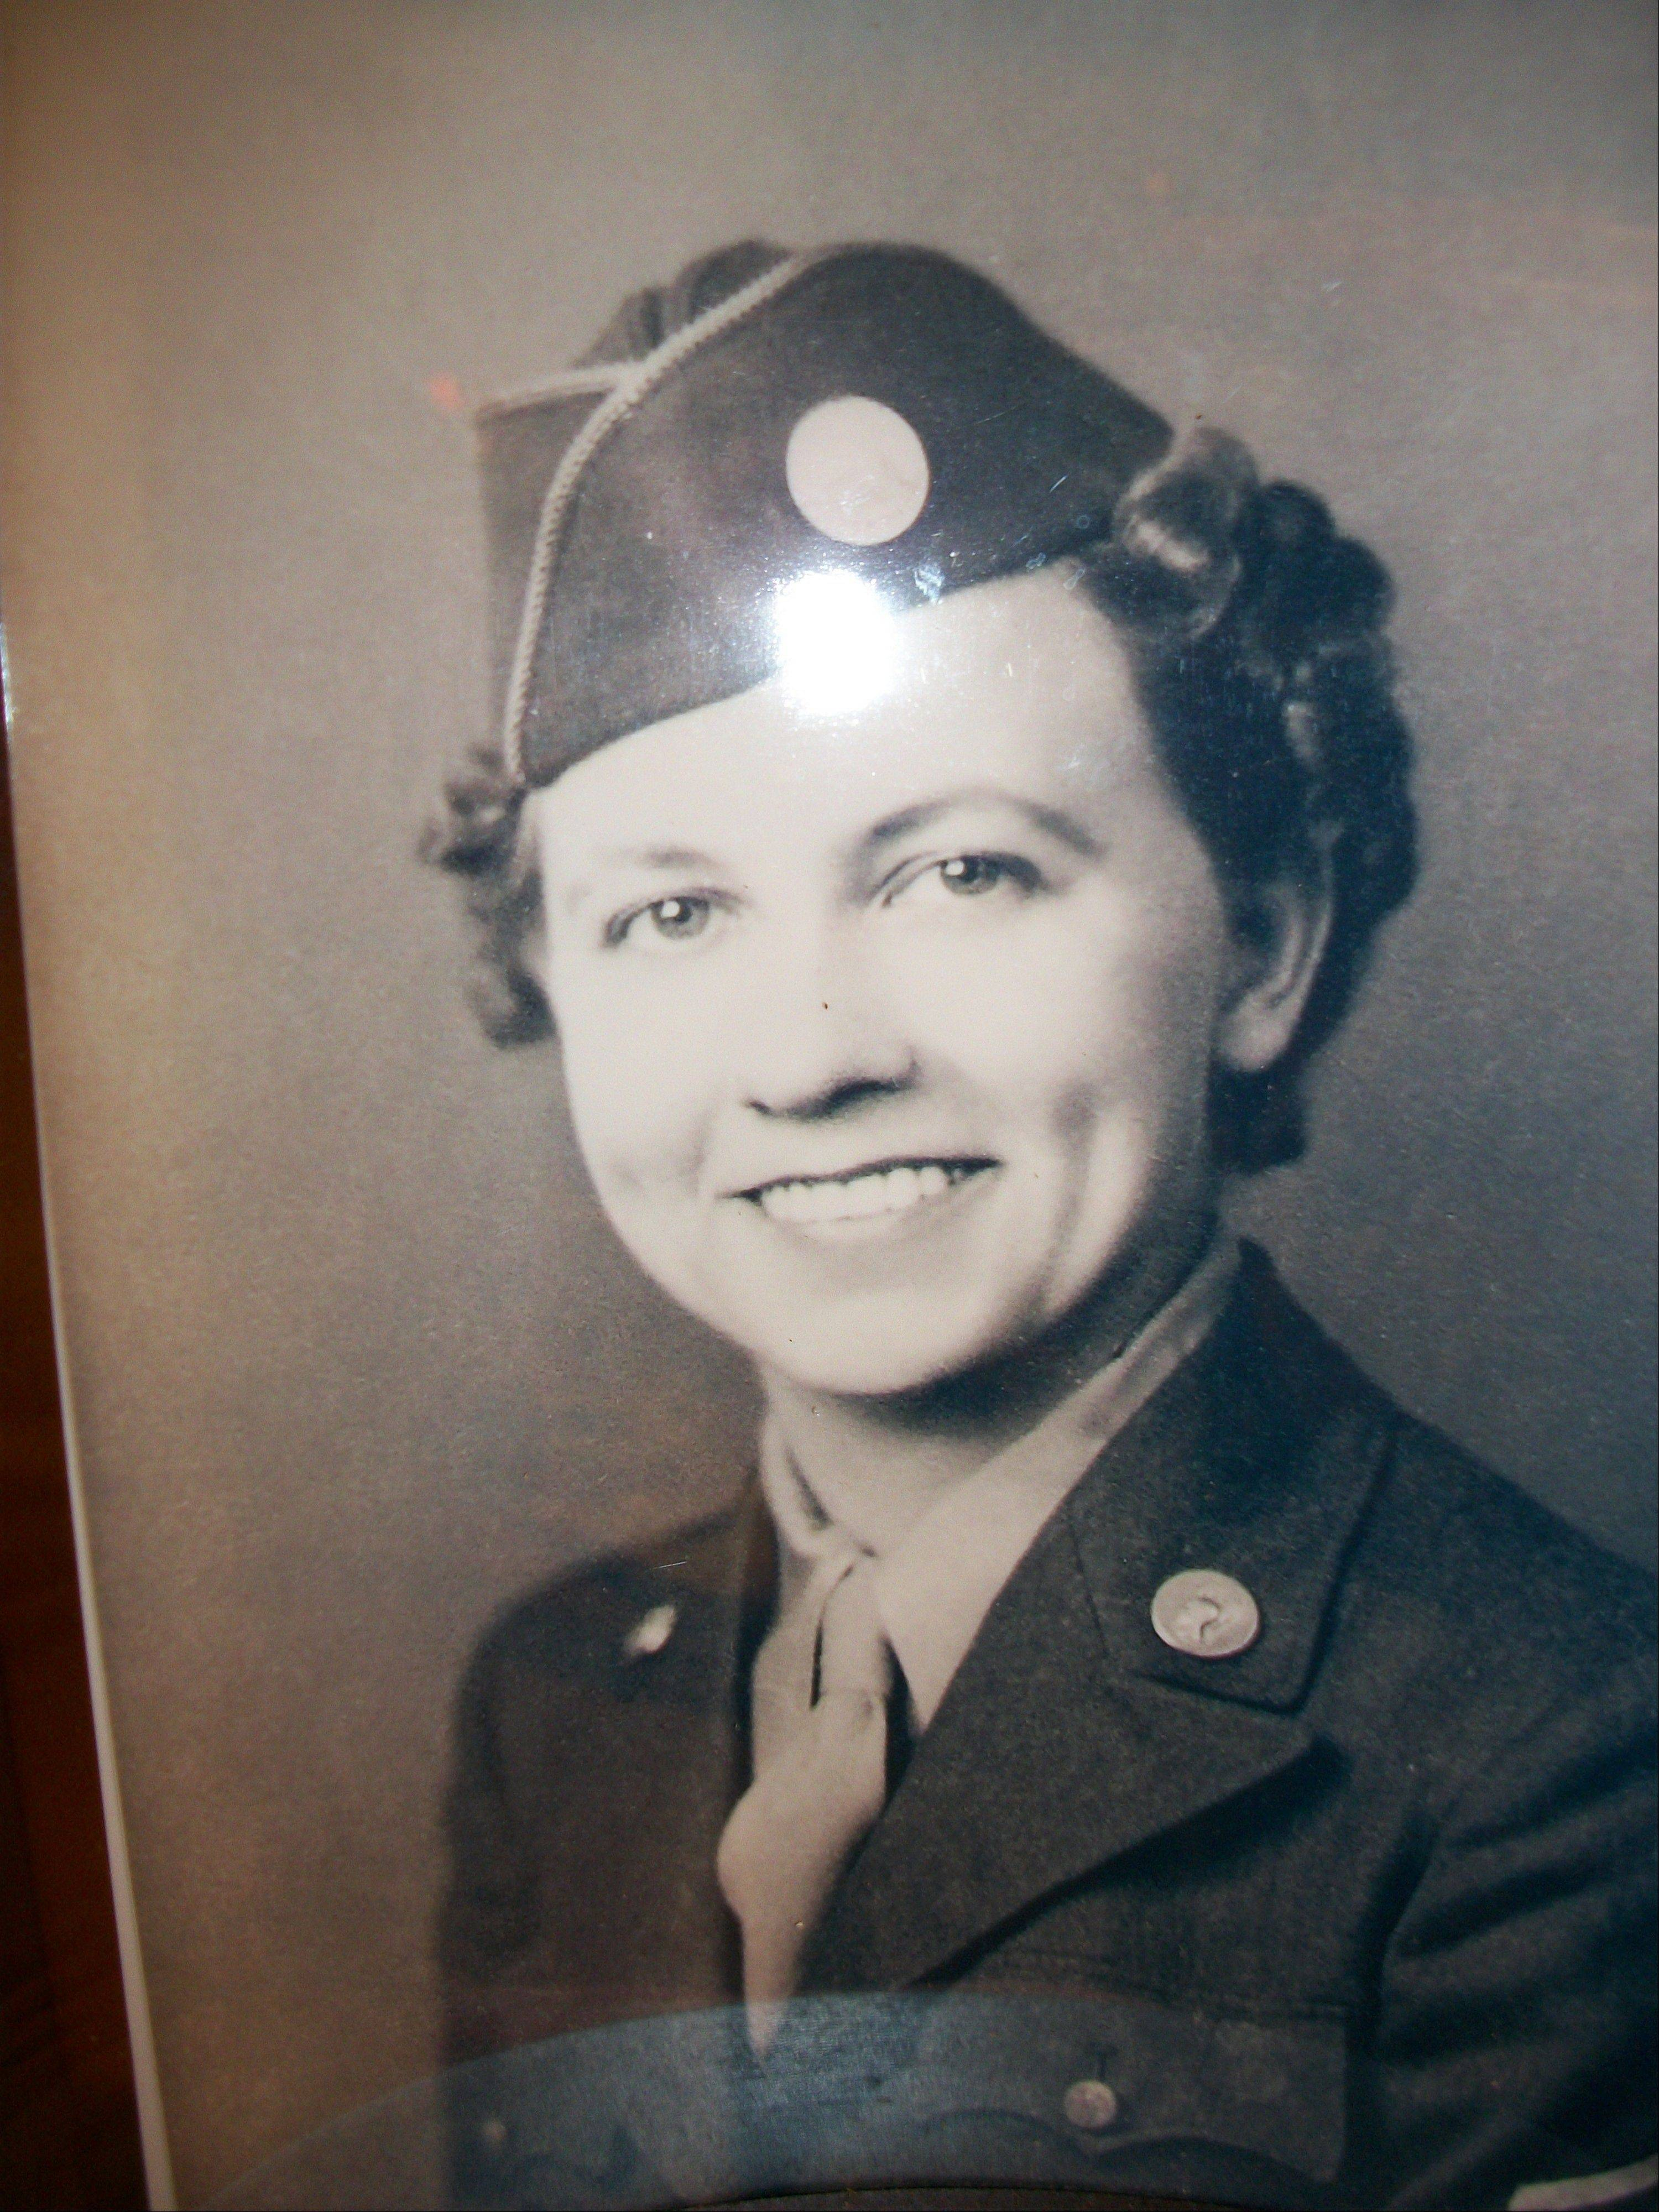 Wisconsin farm girl Wanda Cukla served as a baker in the Army.